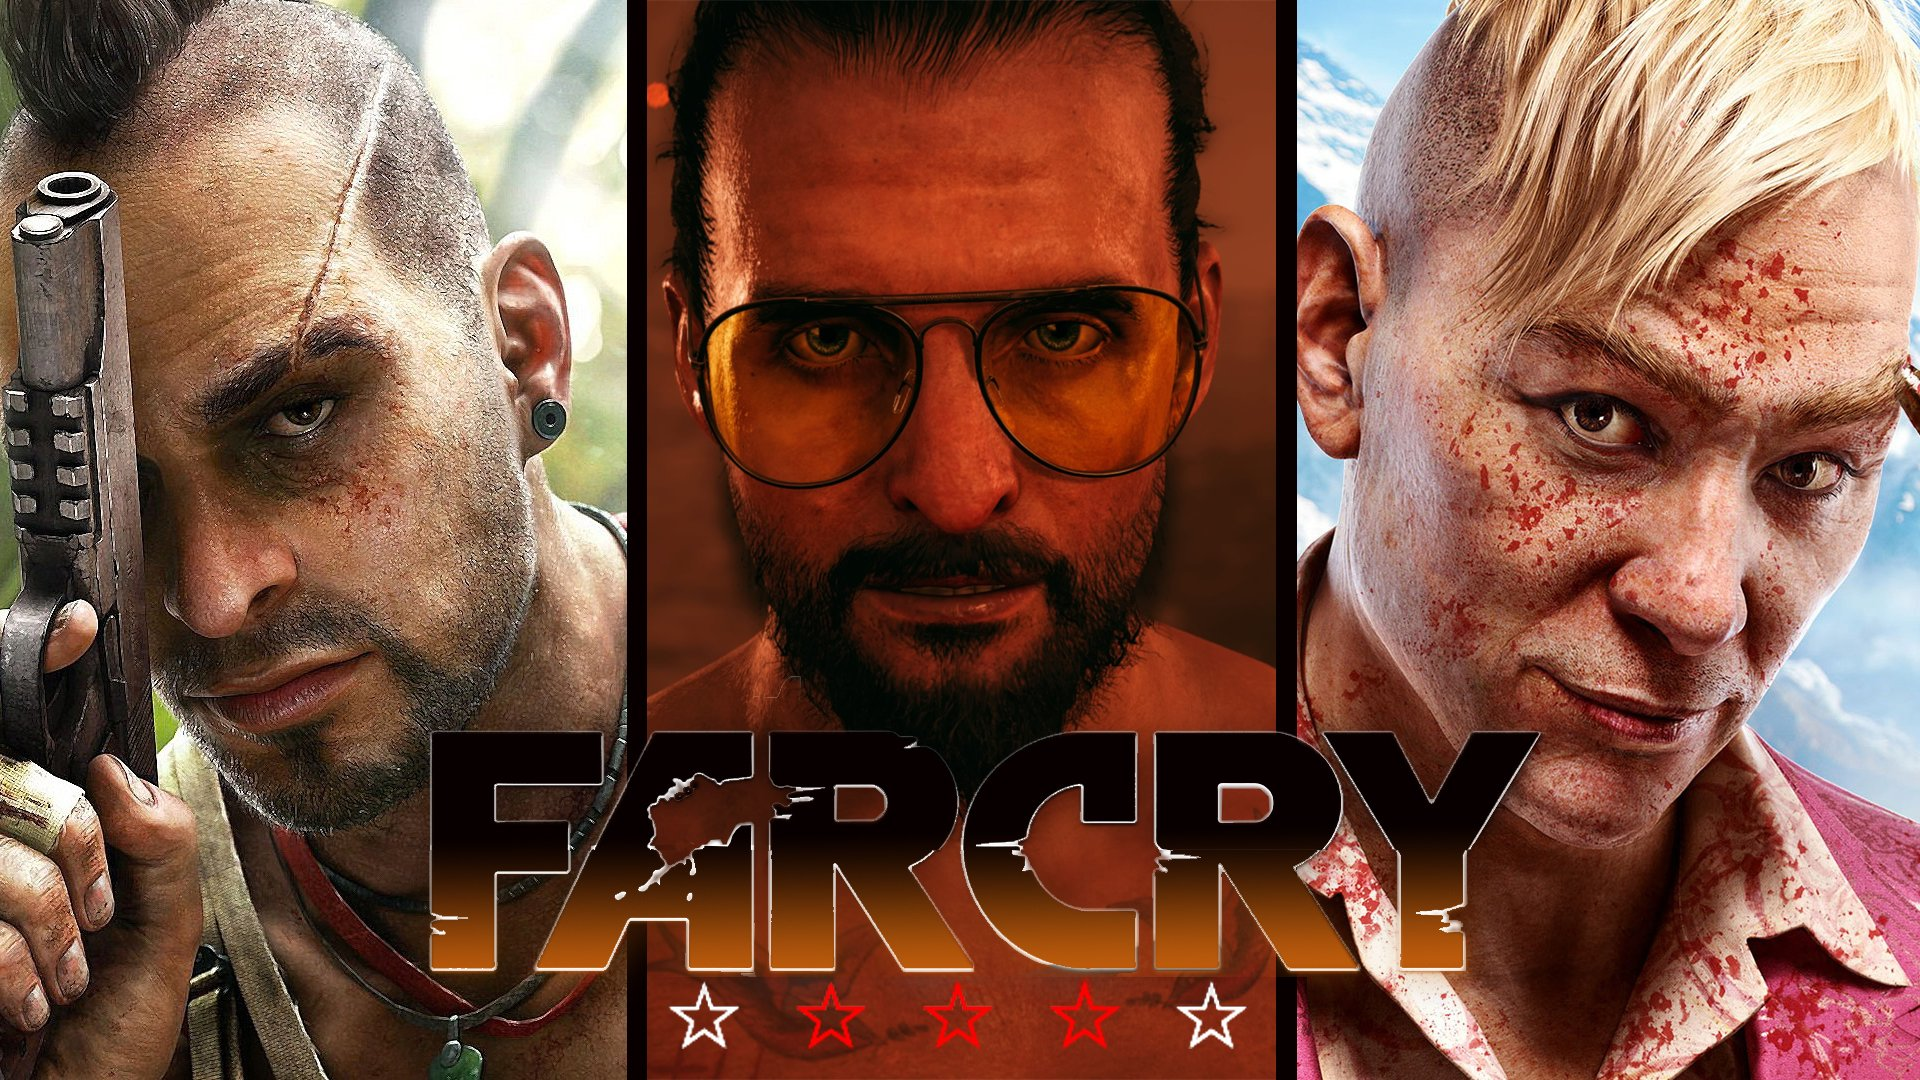 far cry 5 villain wallpaper